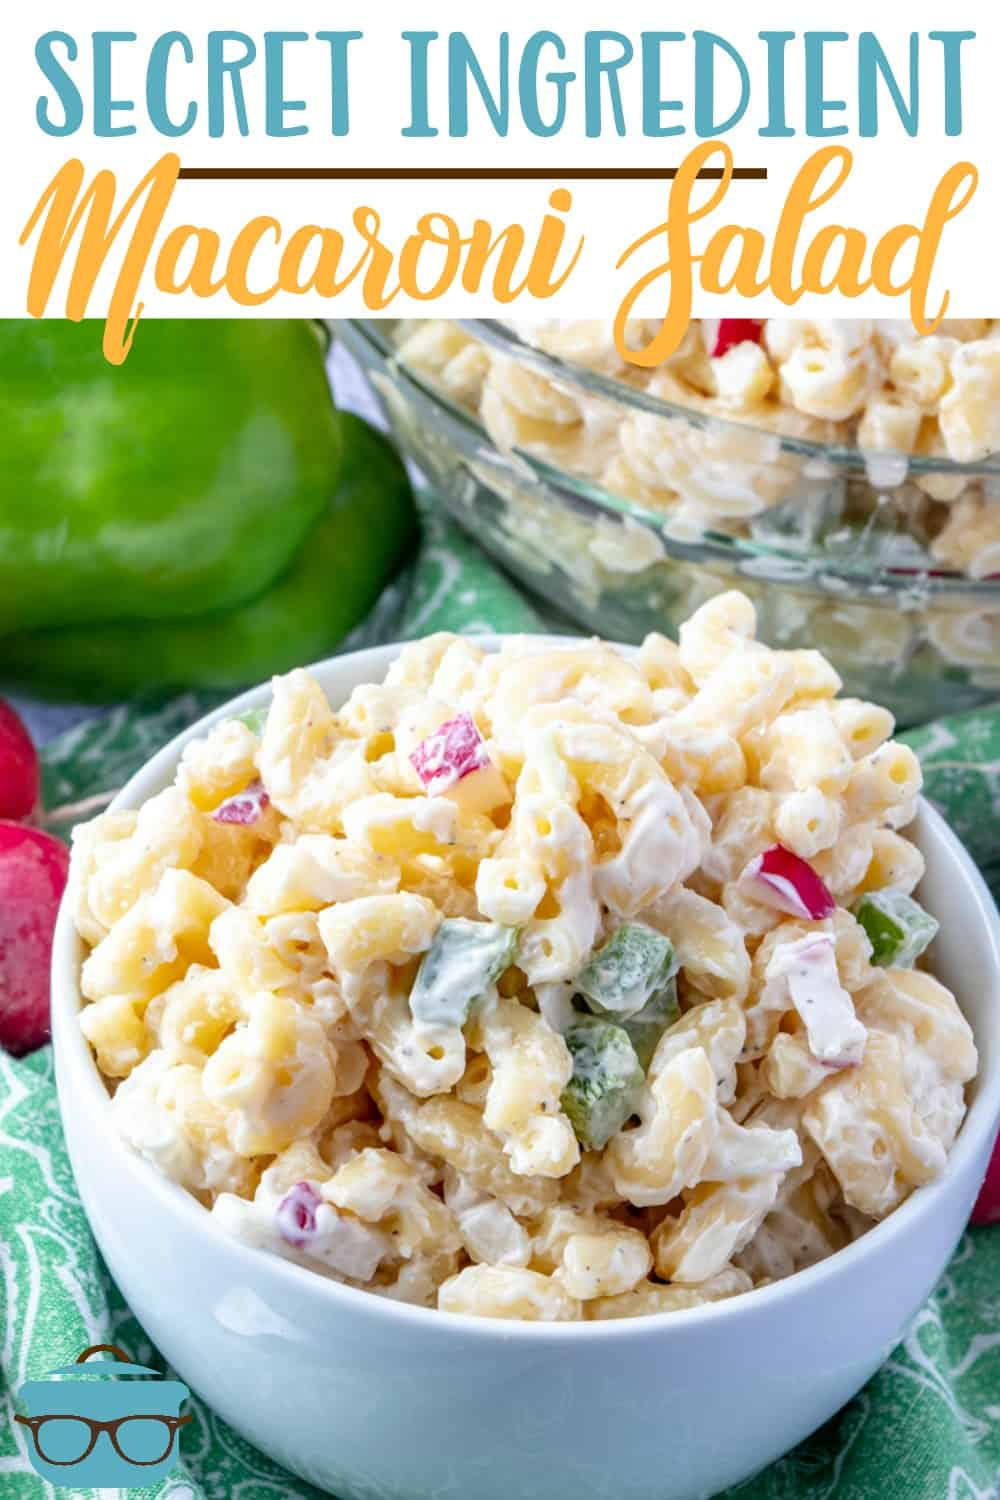 The Best Macaroni Salad recipe starts with macaroni noodles, peppers, onions and rasishes and is mixed with a secret-ingredient creamy dressing! #macaronisalad #sidedish